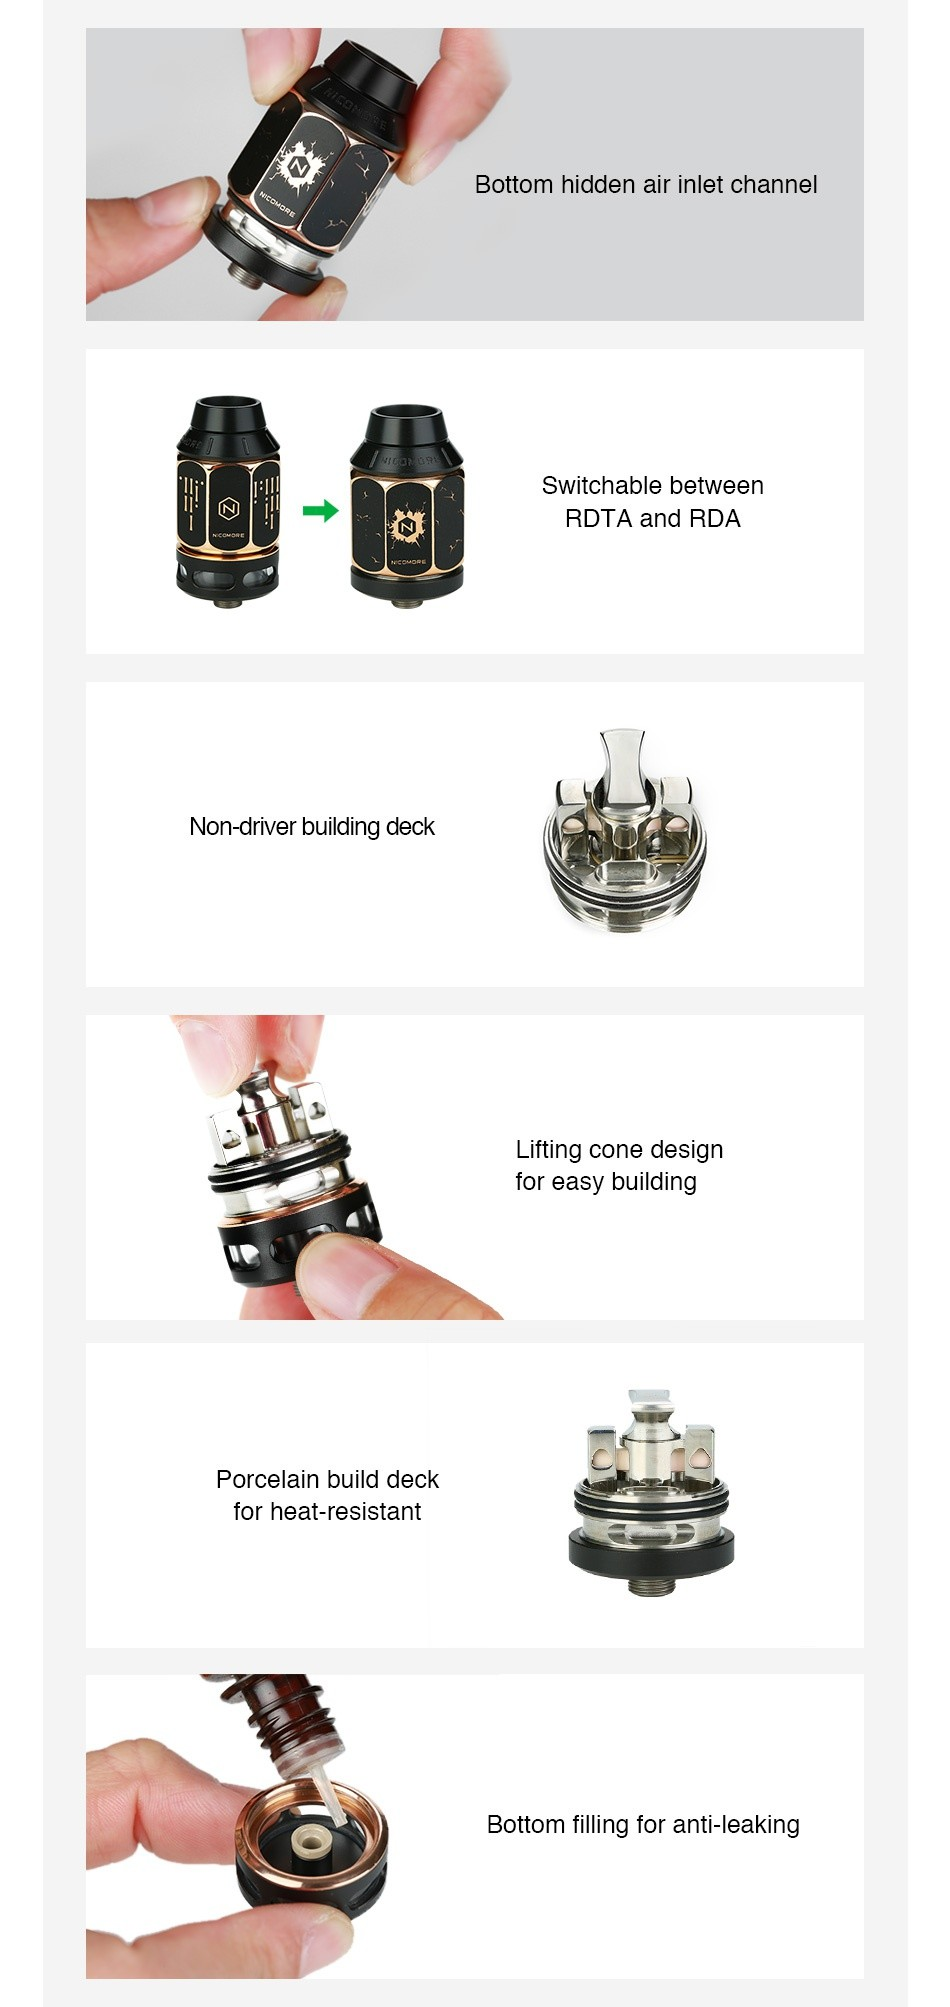 Nicomore M1 RDA/RDTA 2ml Bottom hidden air inlet channel Switchable between RdTA and rda Non driver building deck Lifting cone desig for easy building Porcelain build deck for heat resistant Bottom filling for anti leaking